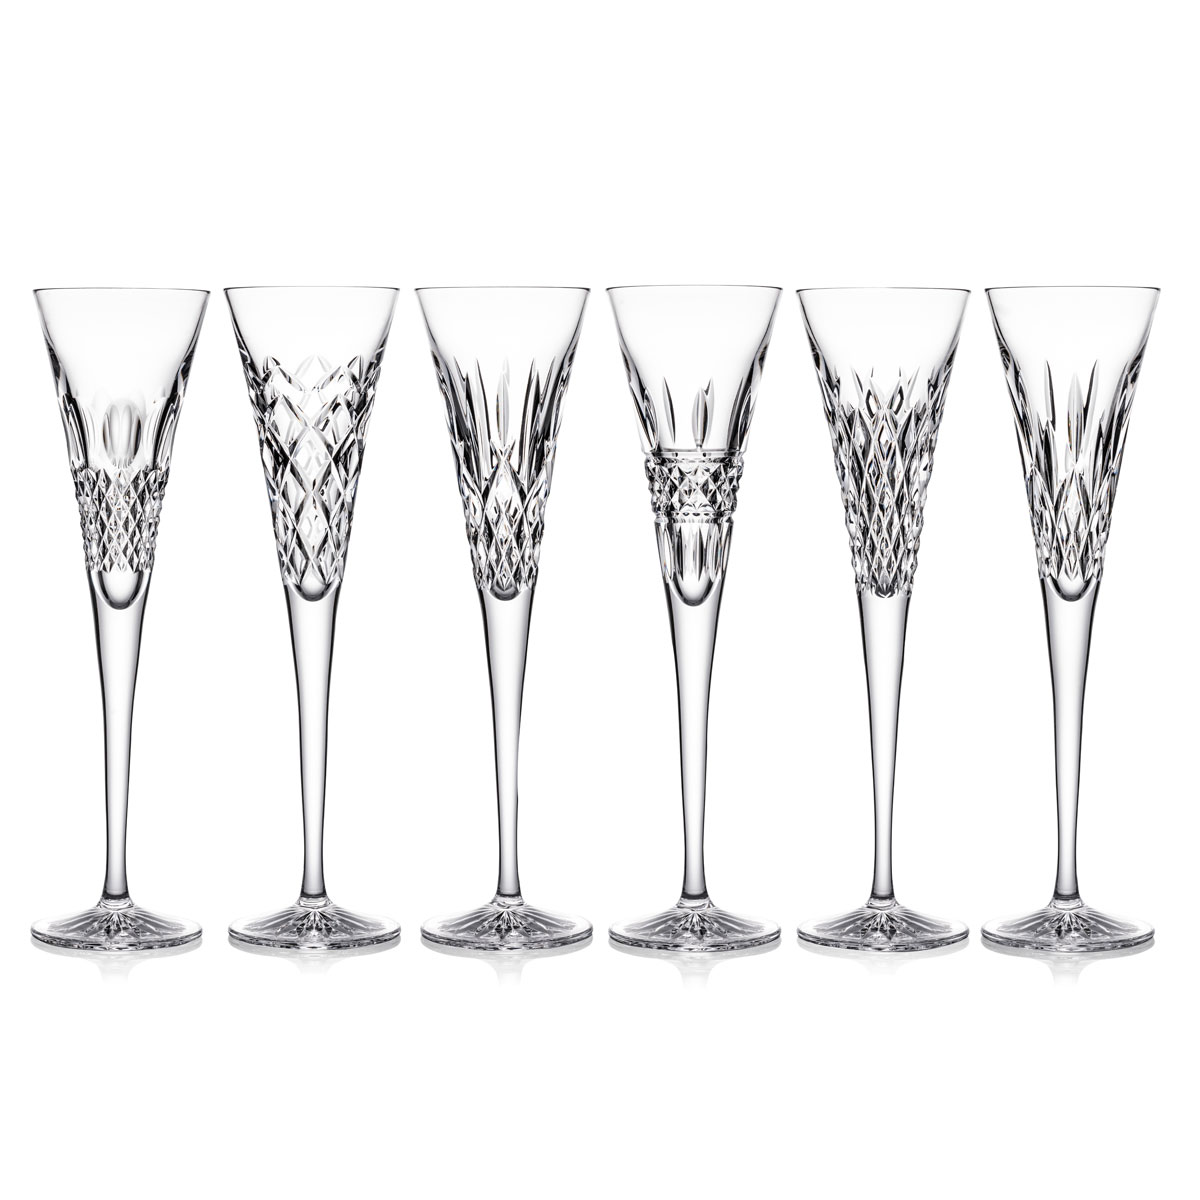 Waterford Heritage Toasting Flutes, Set of Six, Alana, Araglin, Colleen, Irish Lace, Lismore and Powerscourt